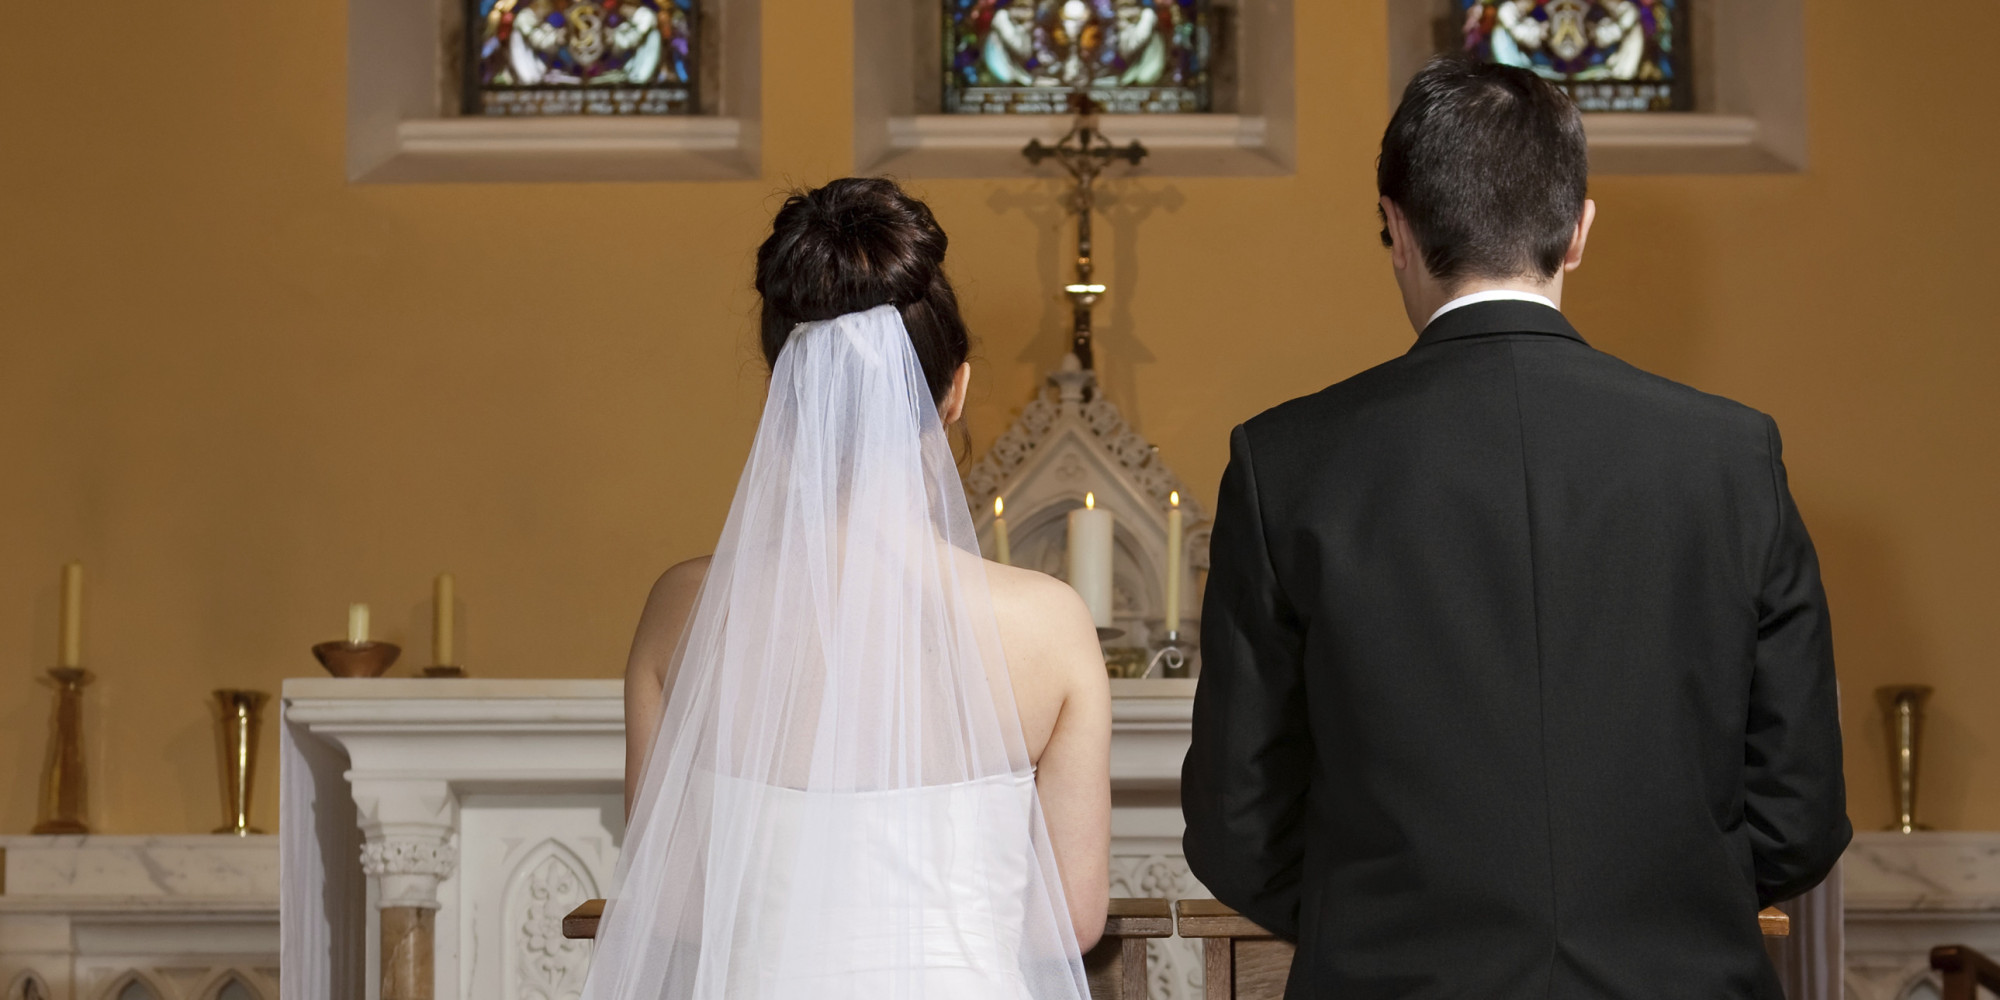 Love Marriage And The Vatican Americans Attitudes About Catholic Church